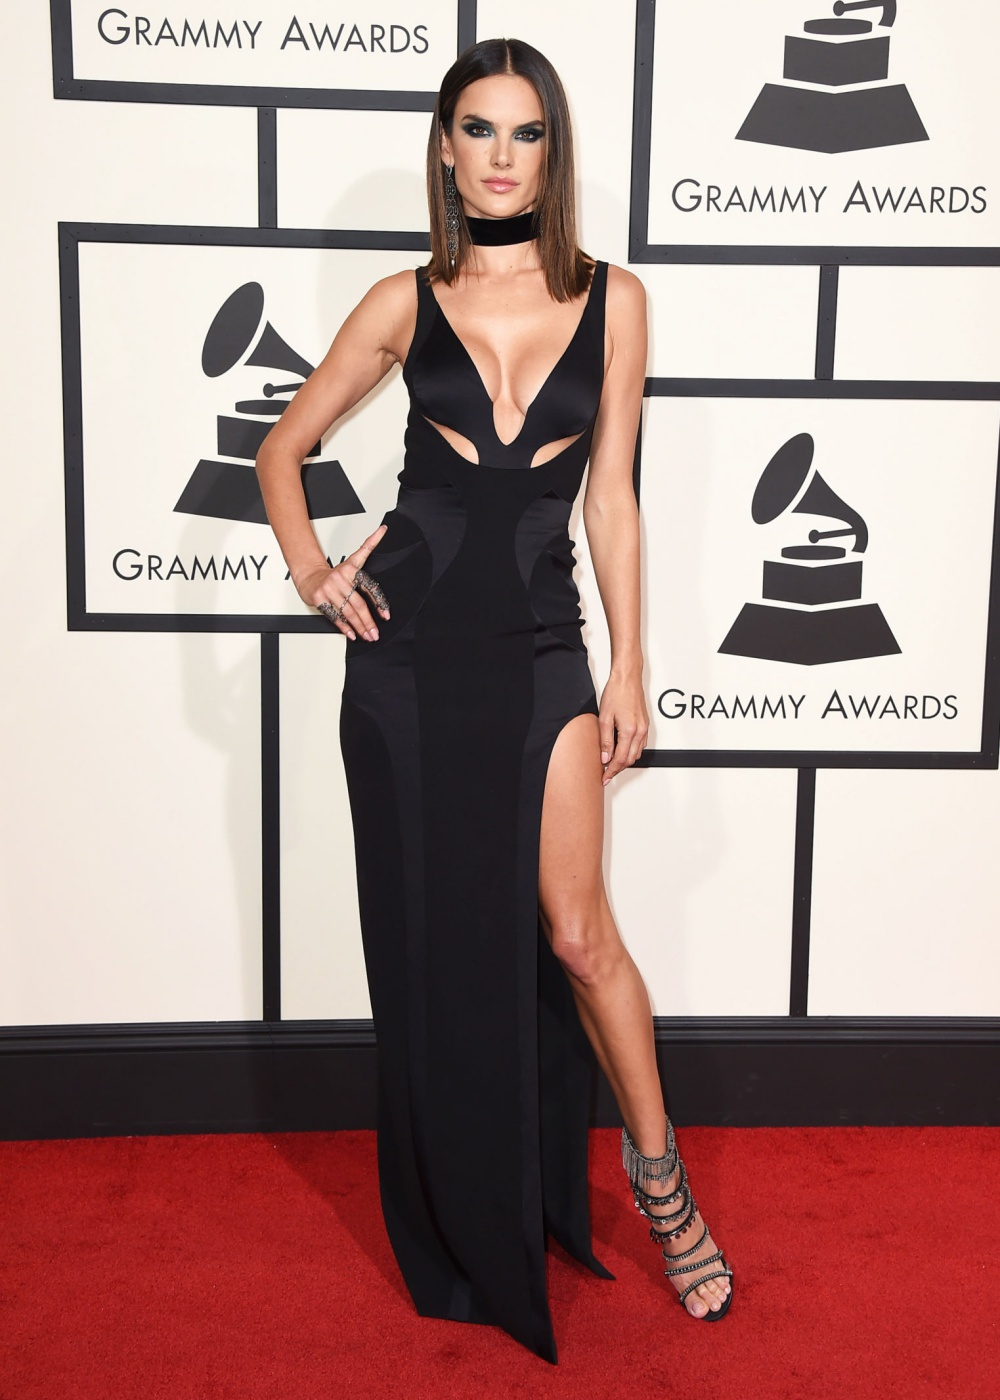 Alessandra Ambrosio Grammys 2016 Best Dressed Celebrities